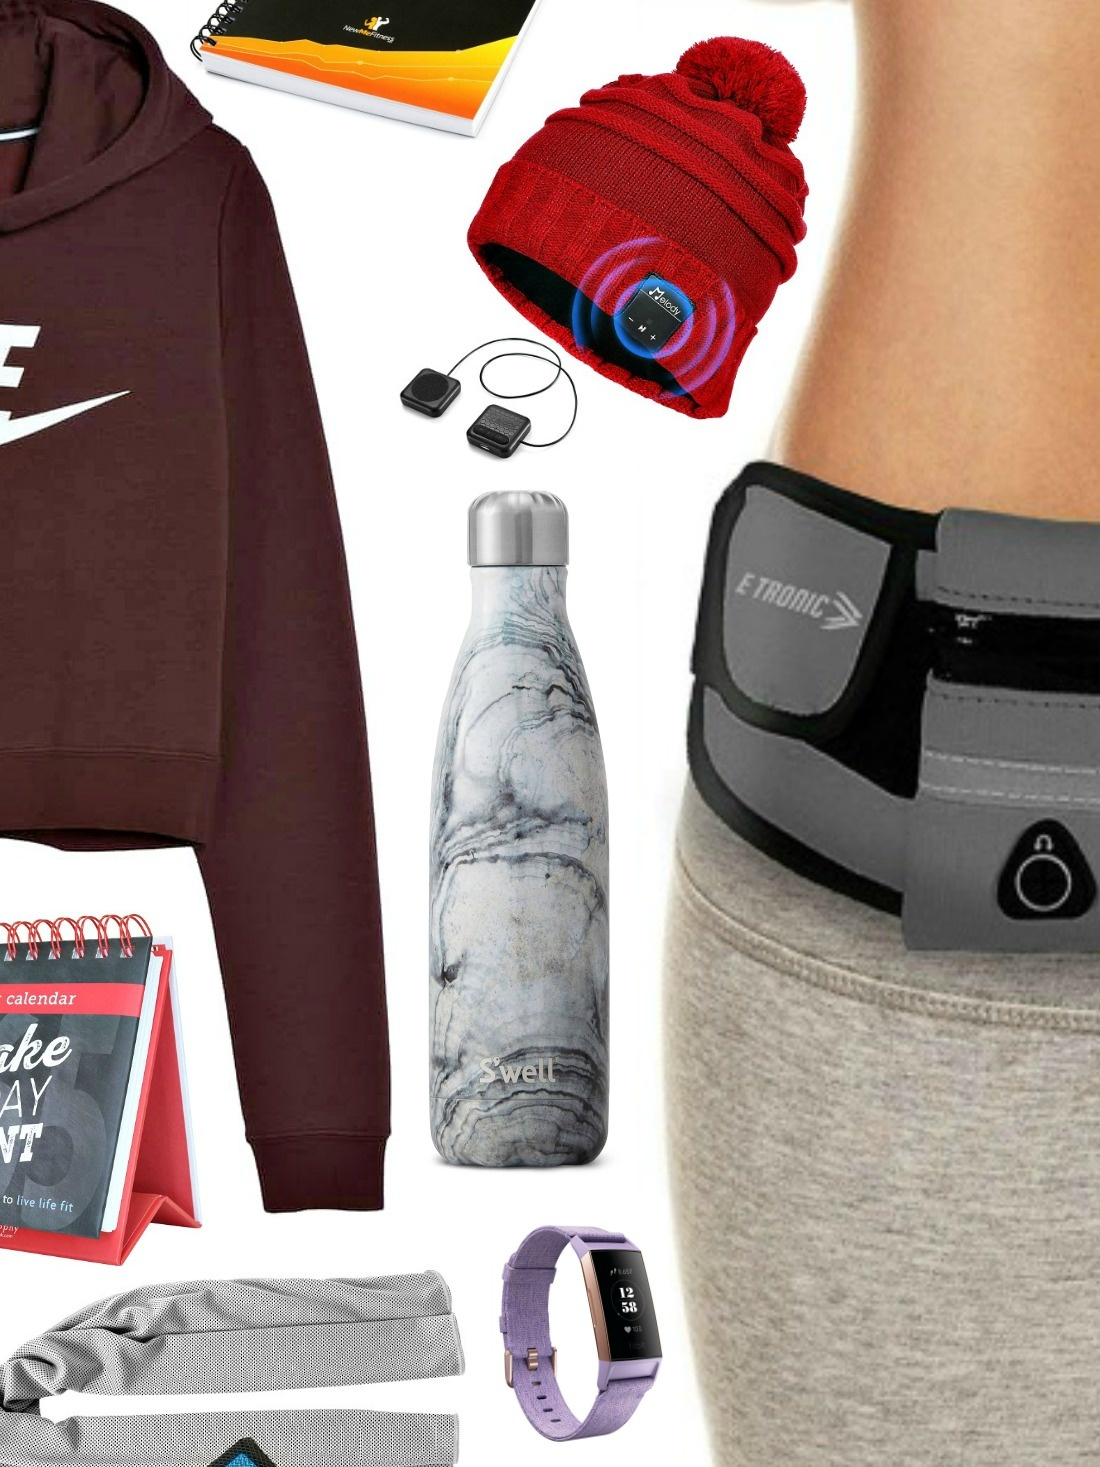 Check out our list of the best fitness gifts for her. Great for any woman who needs a kick back into her fitness routine!